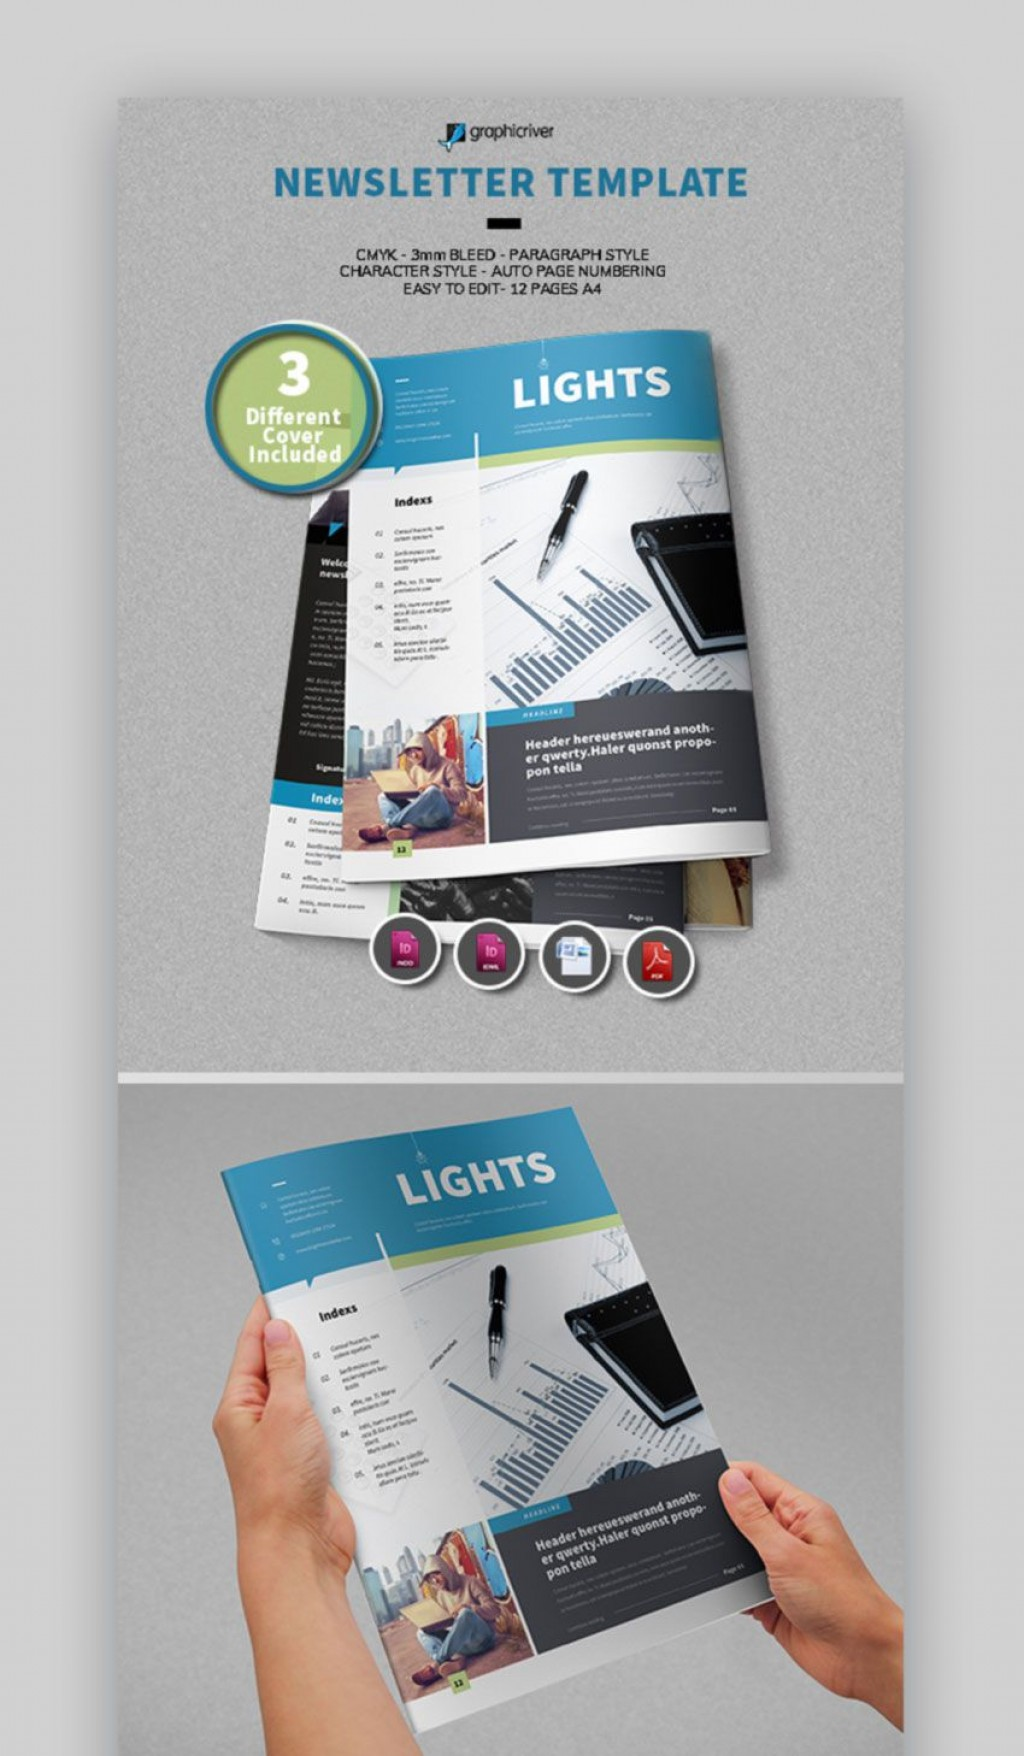 006 Astounding Microsoft Office Newsletter Template Image  Templates Publisher 365 OnlineLarge